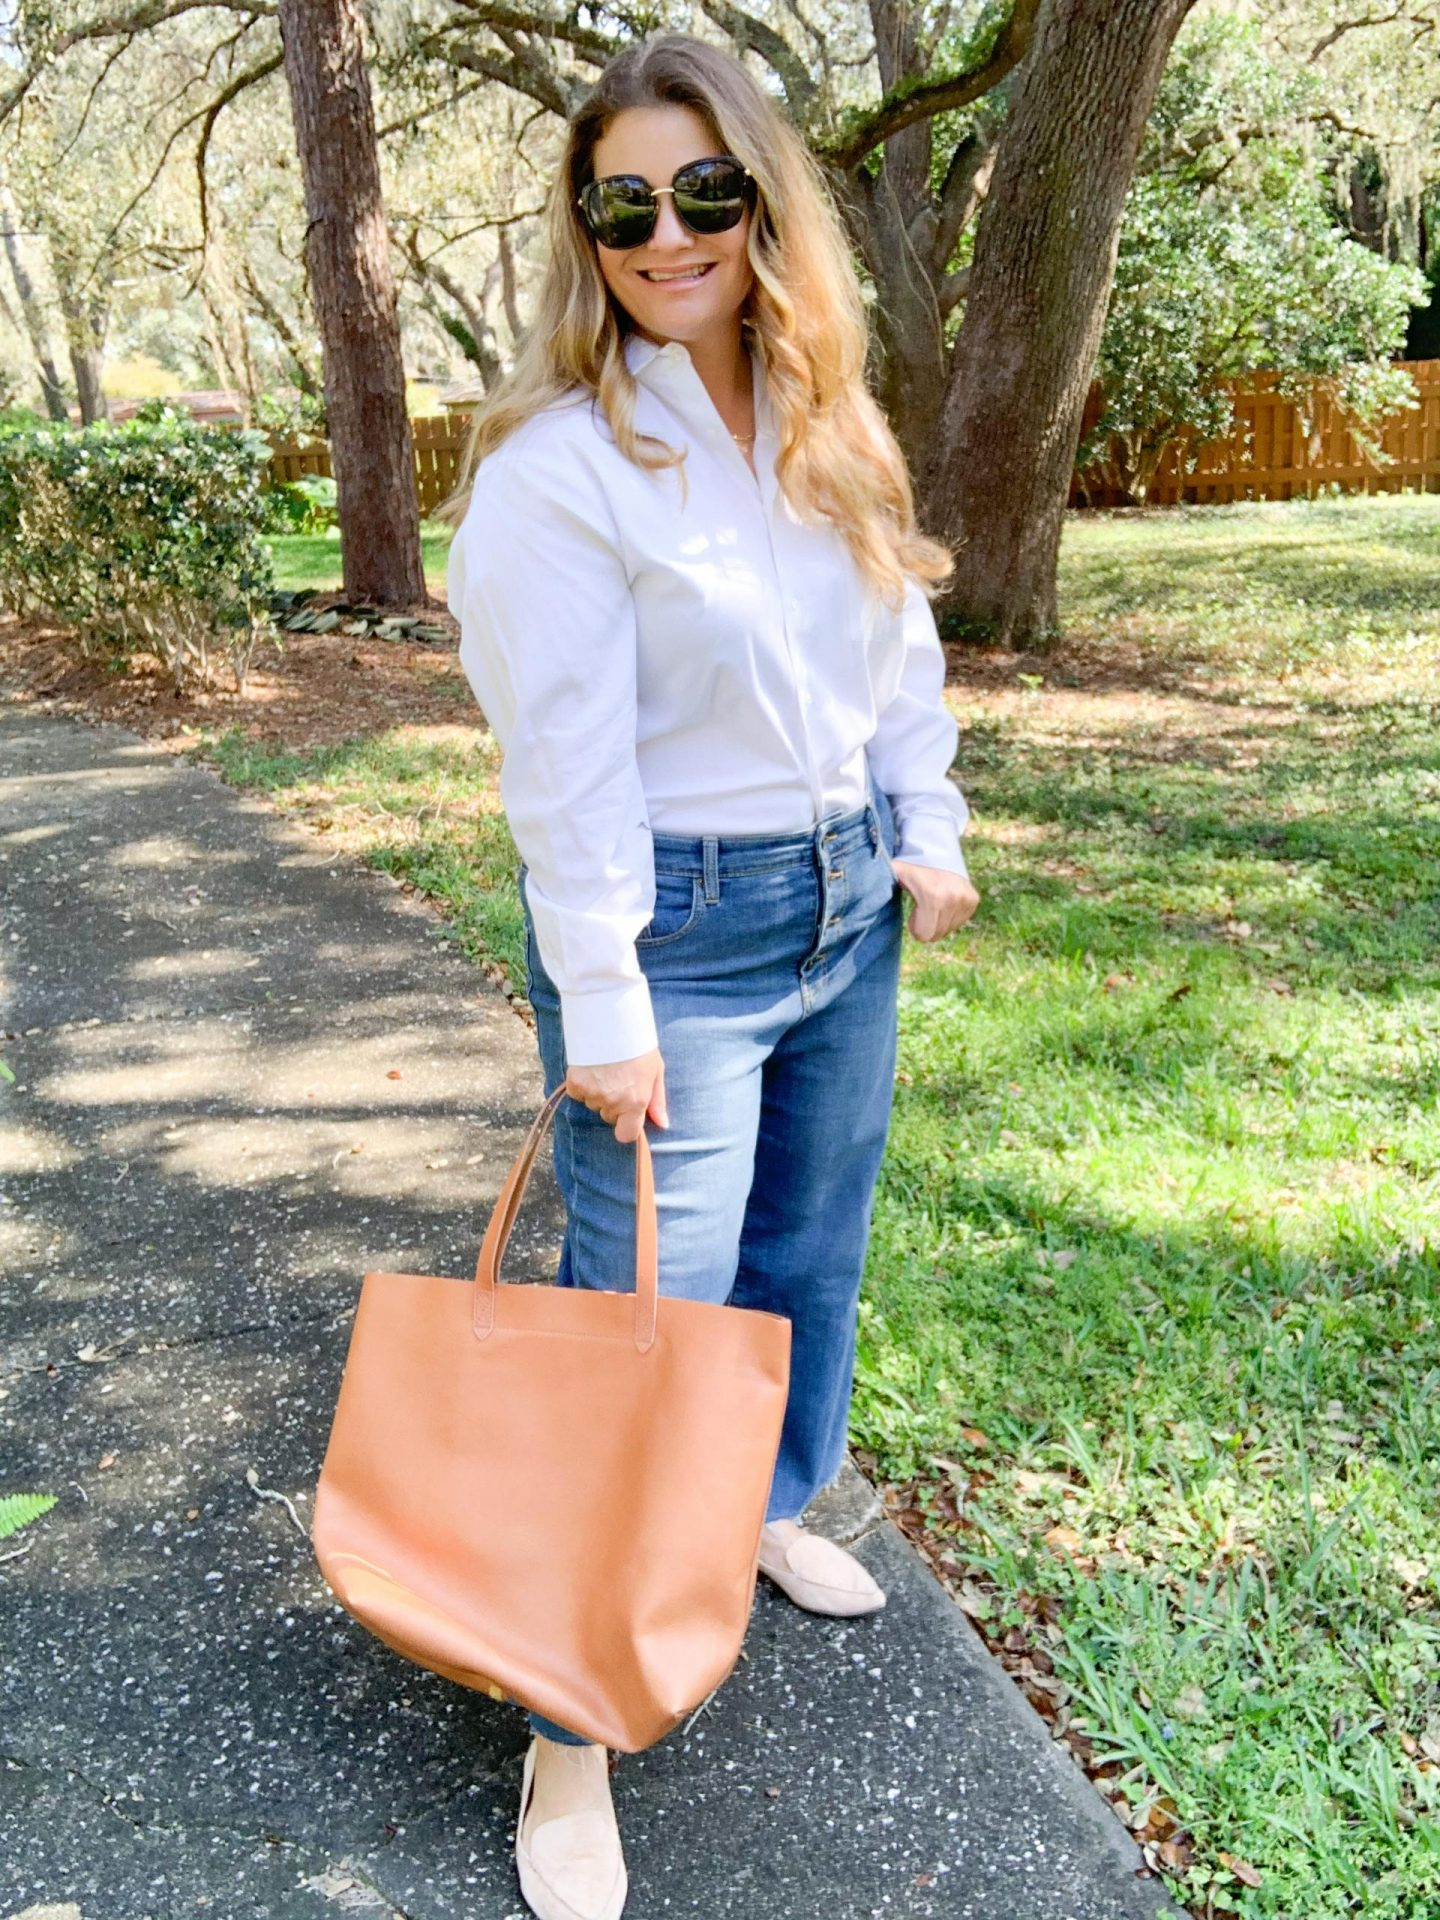 Four chic and effortless ways to wear wide leg jeans. See how to style wide leg jeans into outfits that are on trend and make an impact. Men's white button down Oxford shirt, loafers, Madewell tote spring outfit.